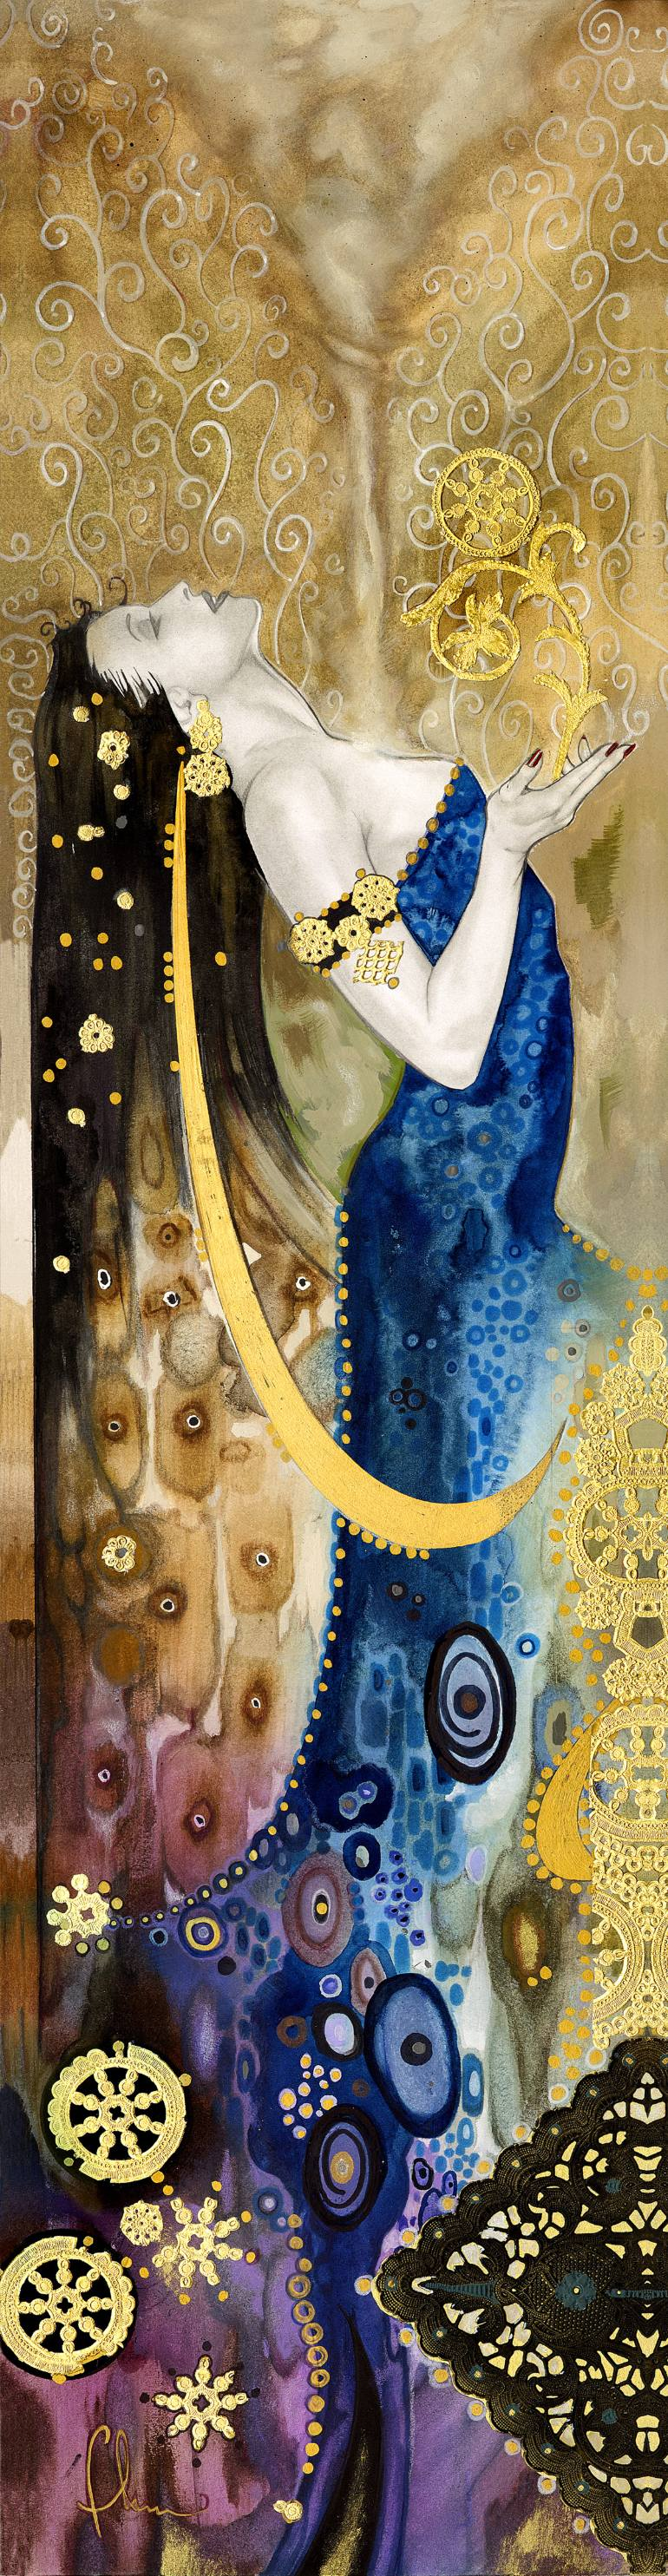 "Saatchi Art Artist Tom Fleming; Painting, ""Spirit & Life"" #art - Painting: Watercolor on Canvas. Size: 44 H x 11 W x 2 in Original is sold, but it is available as a beautiful canvas gallery wrap. Keywords: positive, spirit, klimt, figurative, Inpirational -"